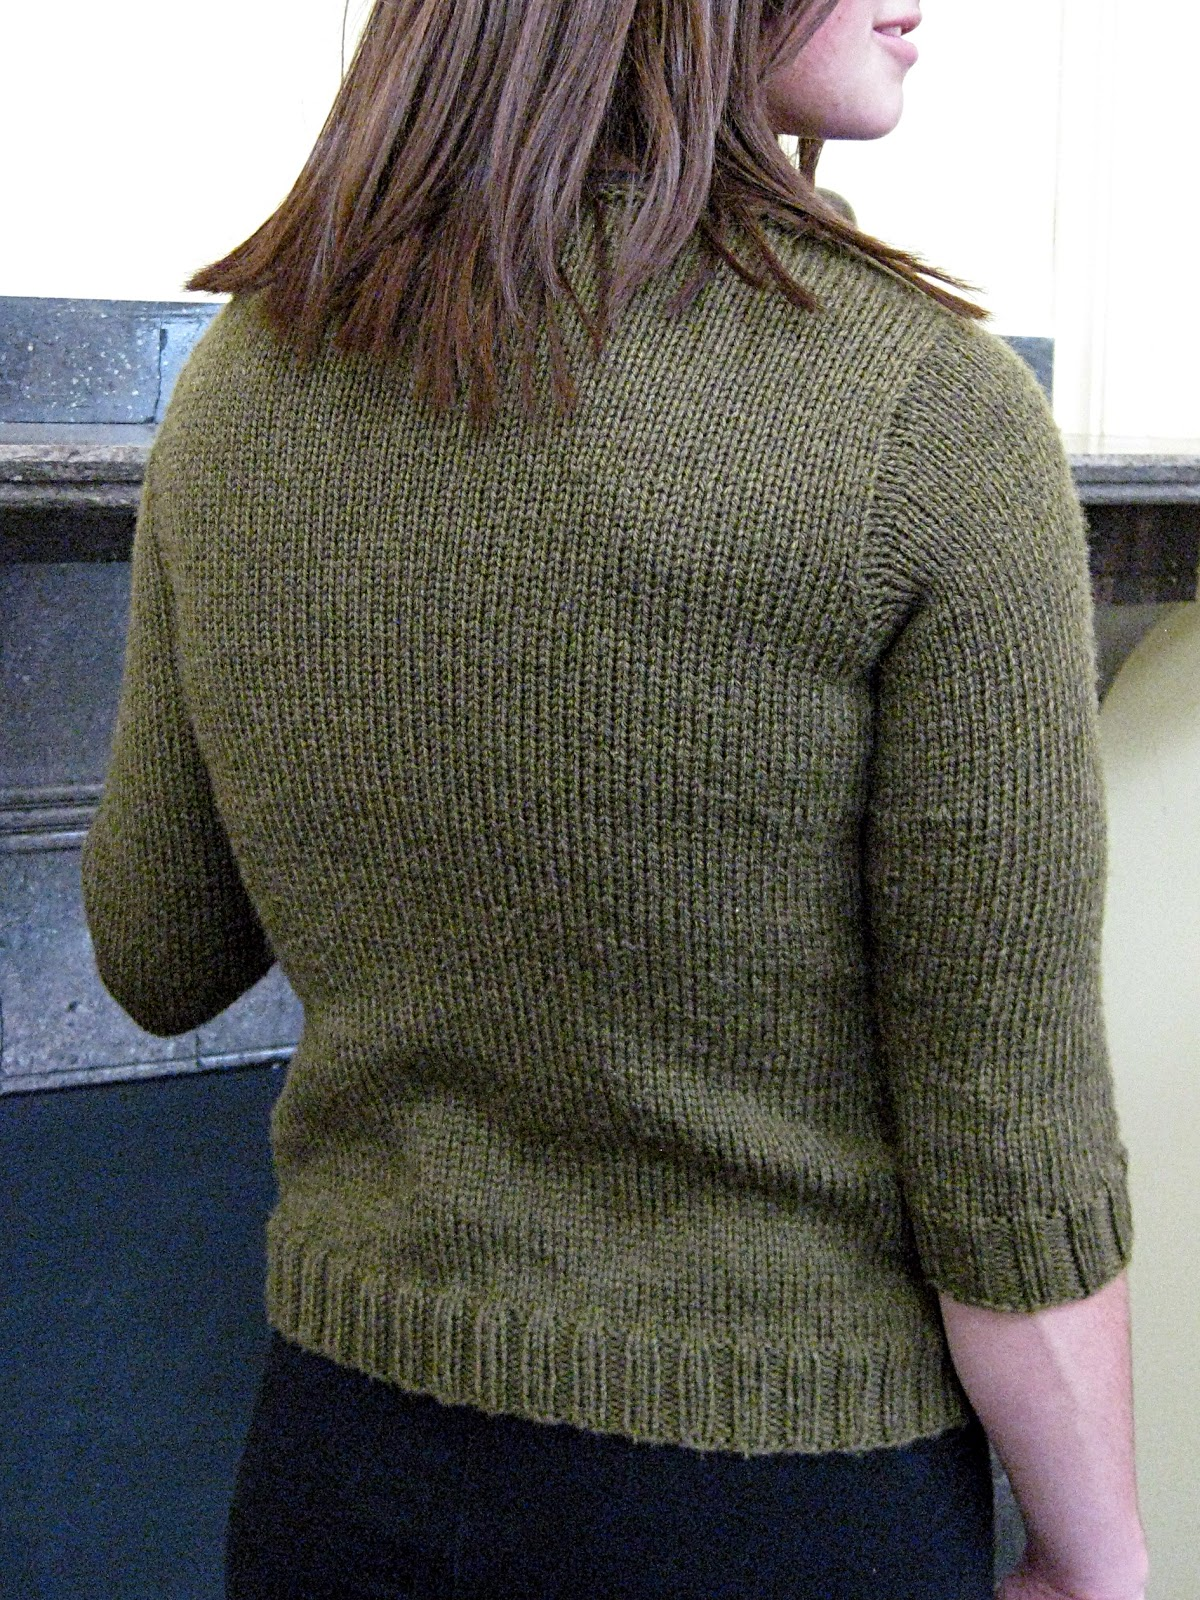 KNitDesigns: Milam Gap Boatneck Sweater